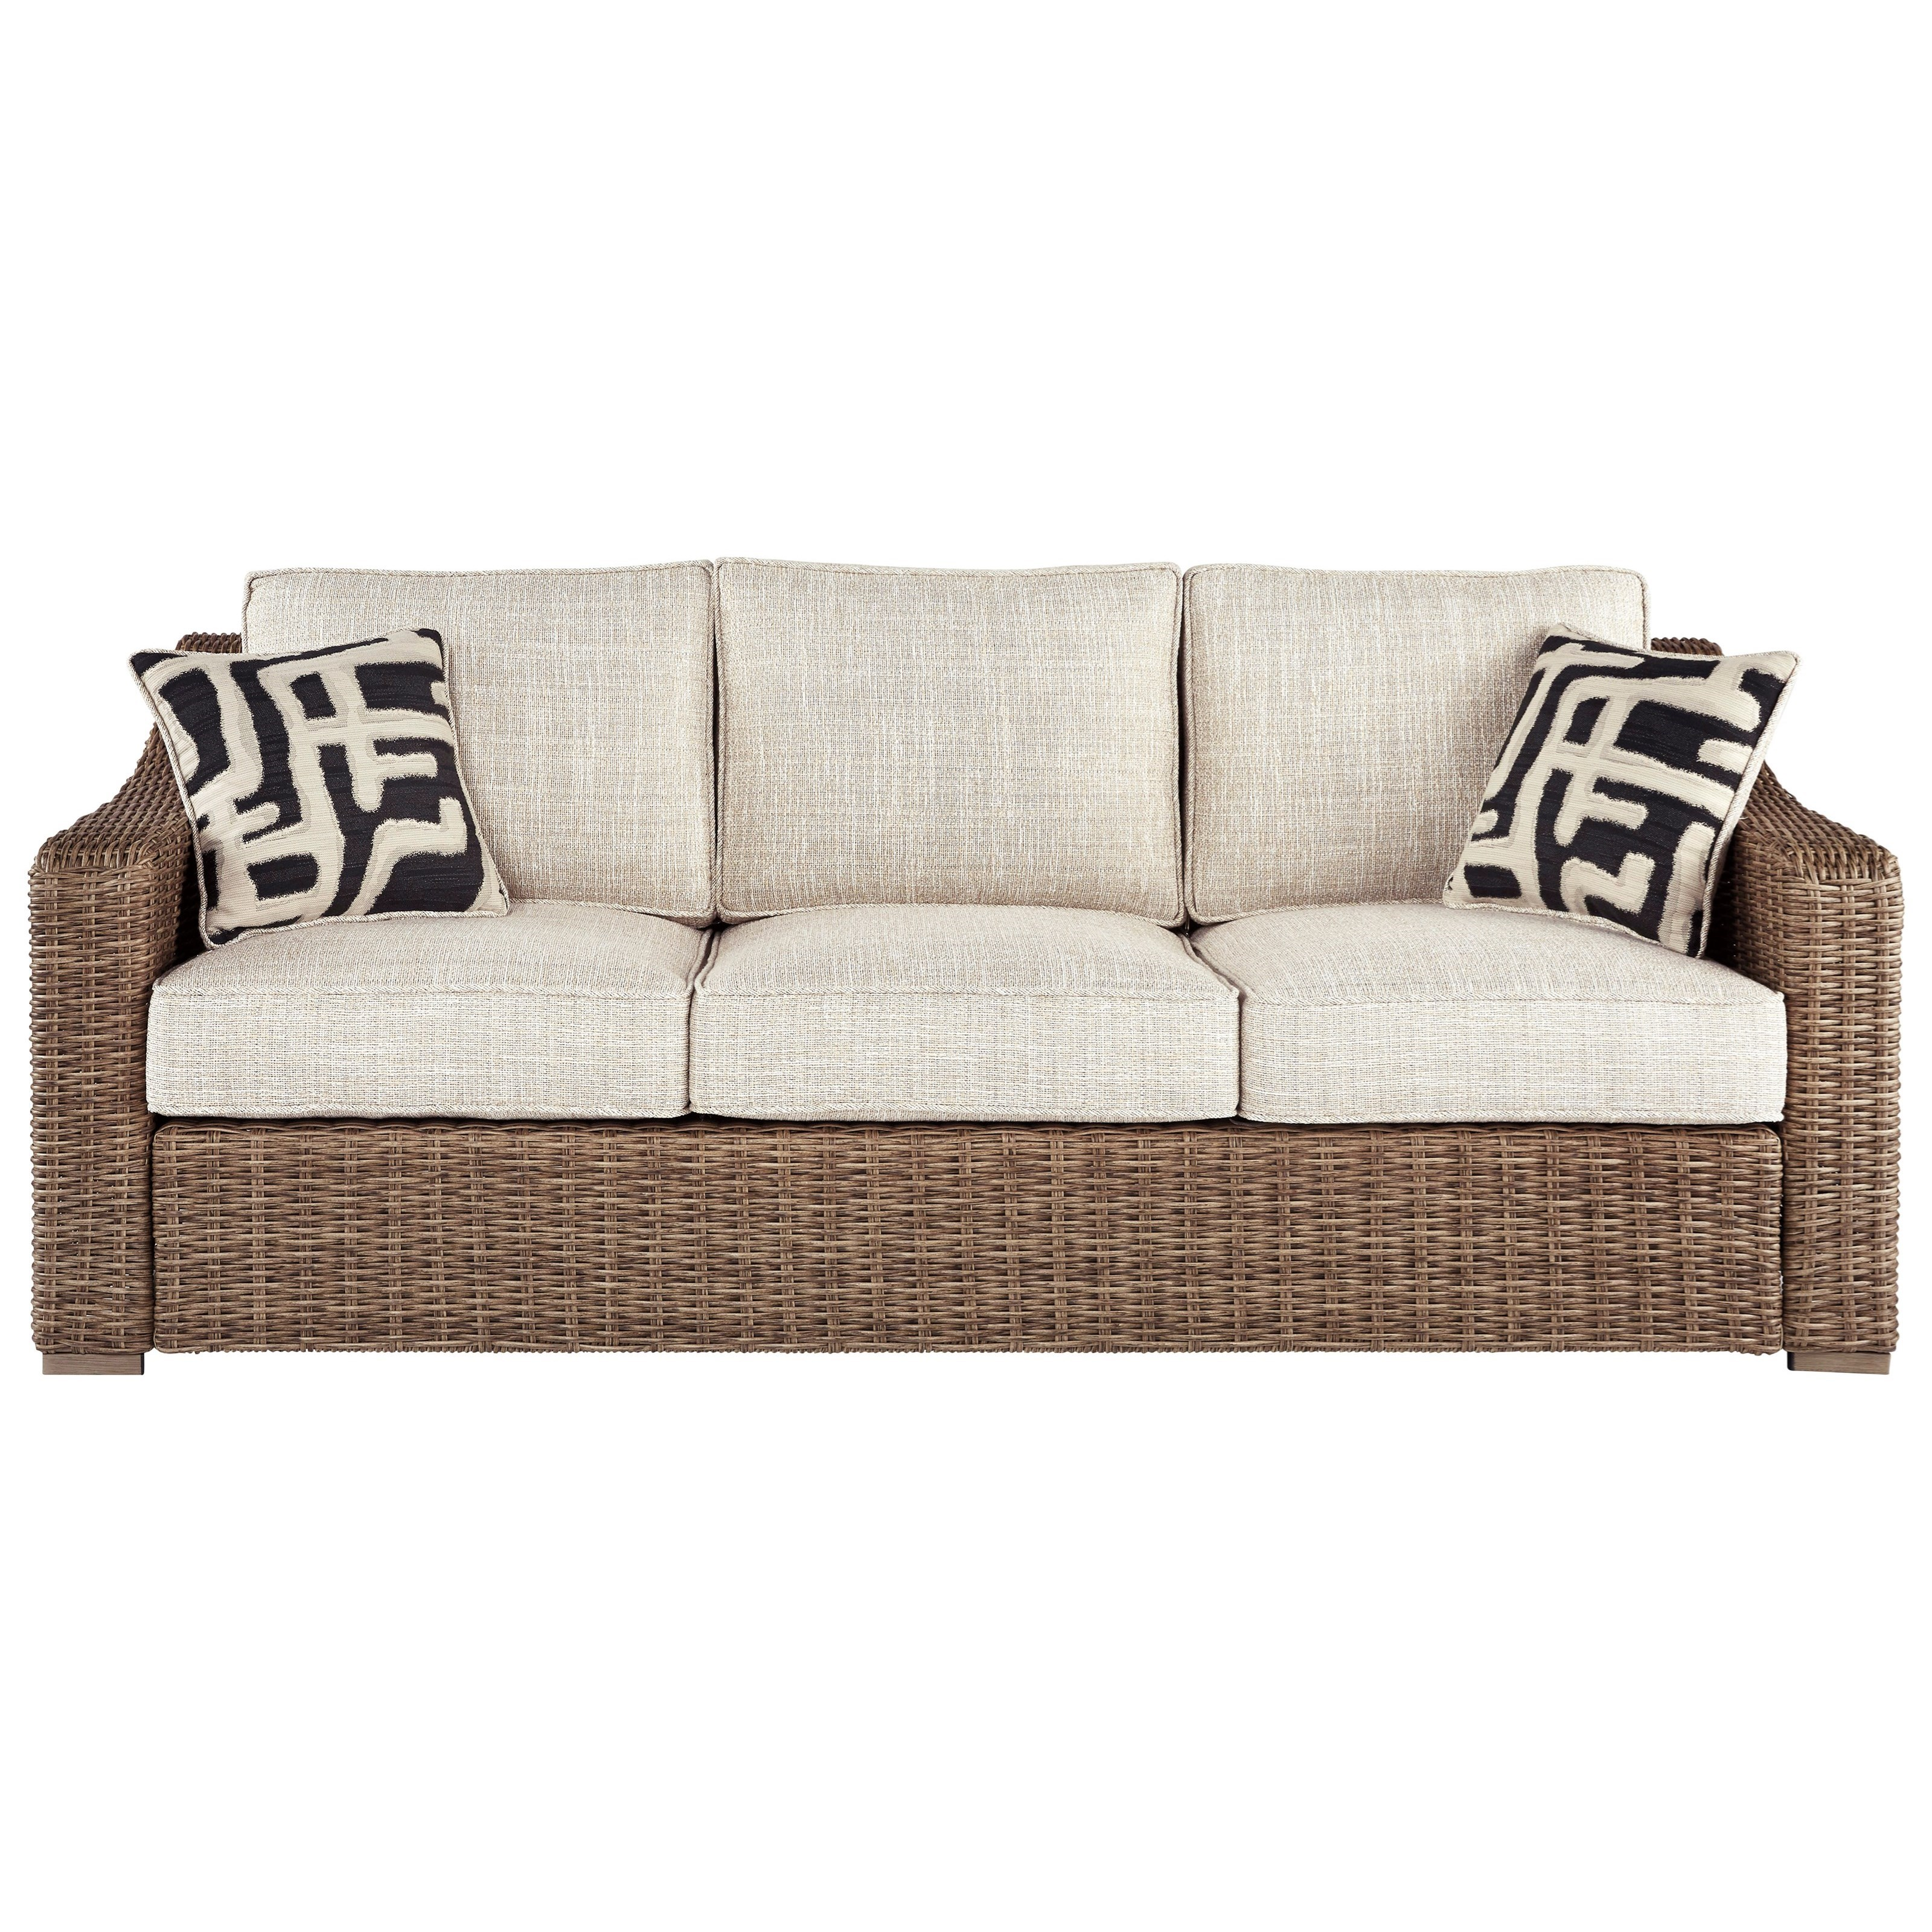 Beachcroft Sofa by Signature Design by Ashley at HomeWorld Furniture